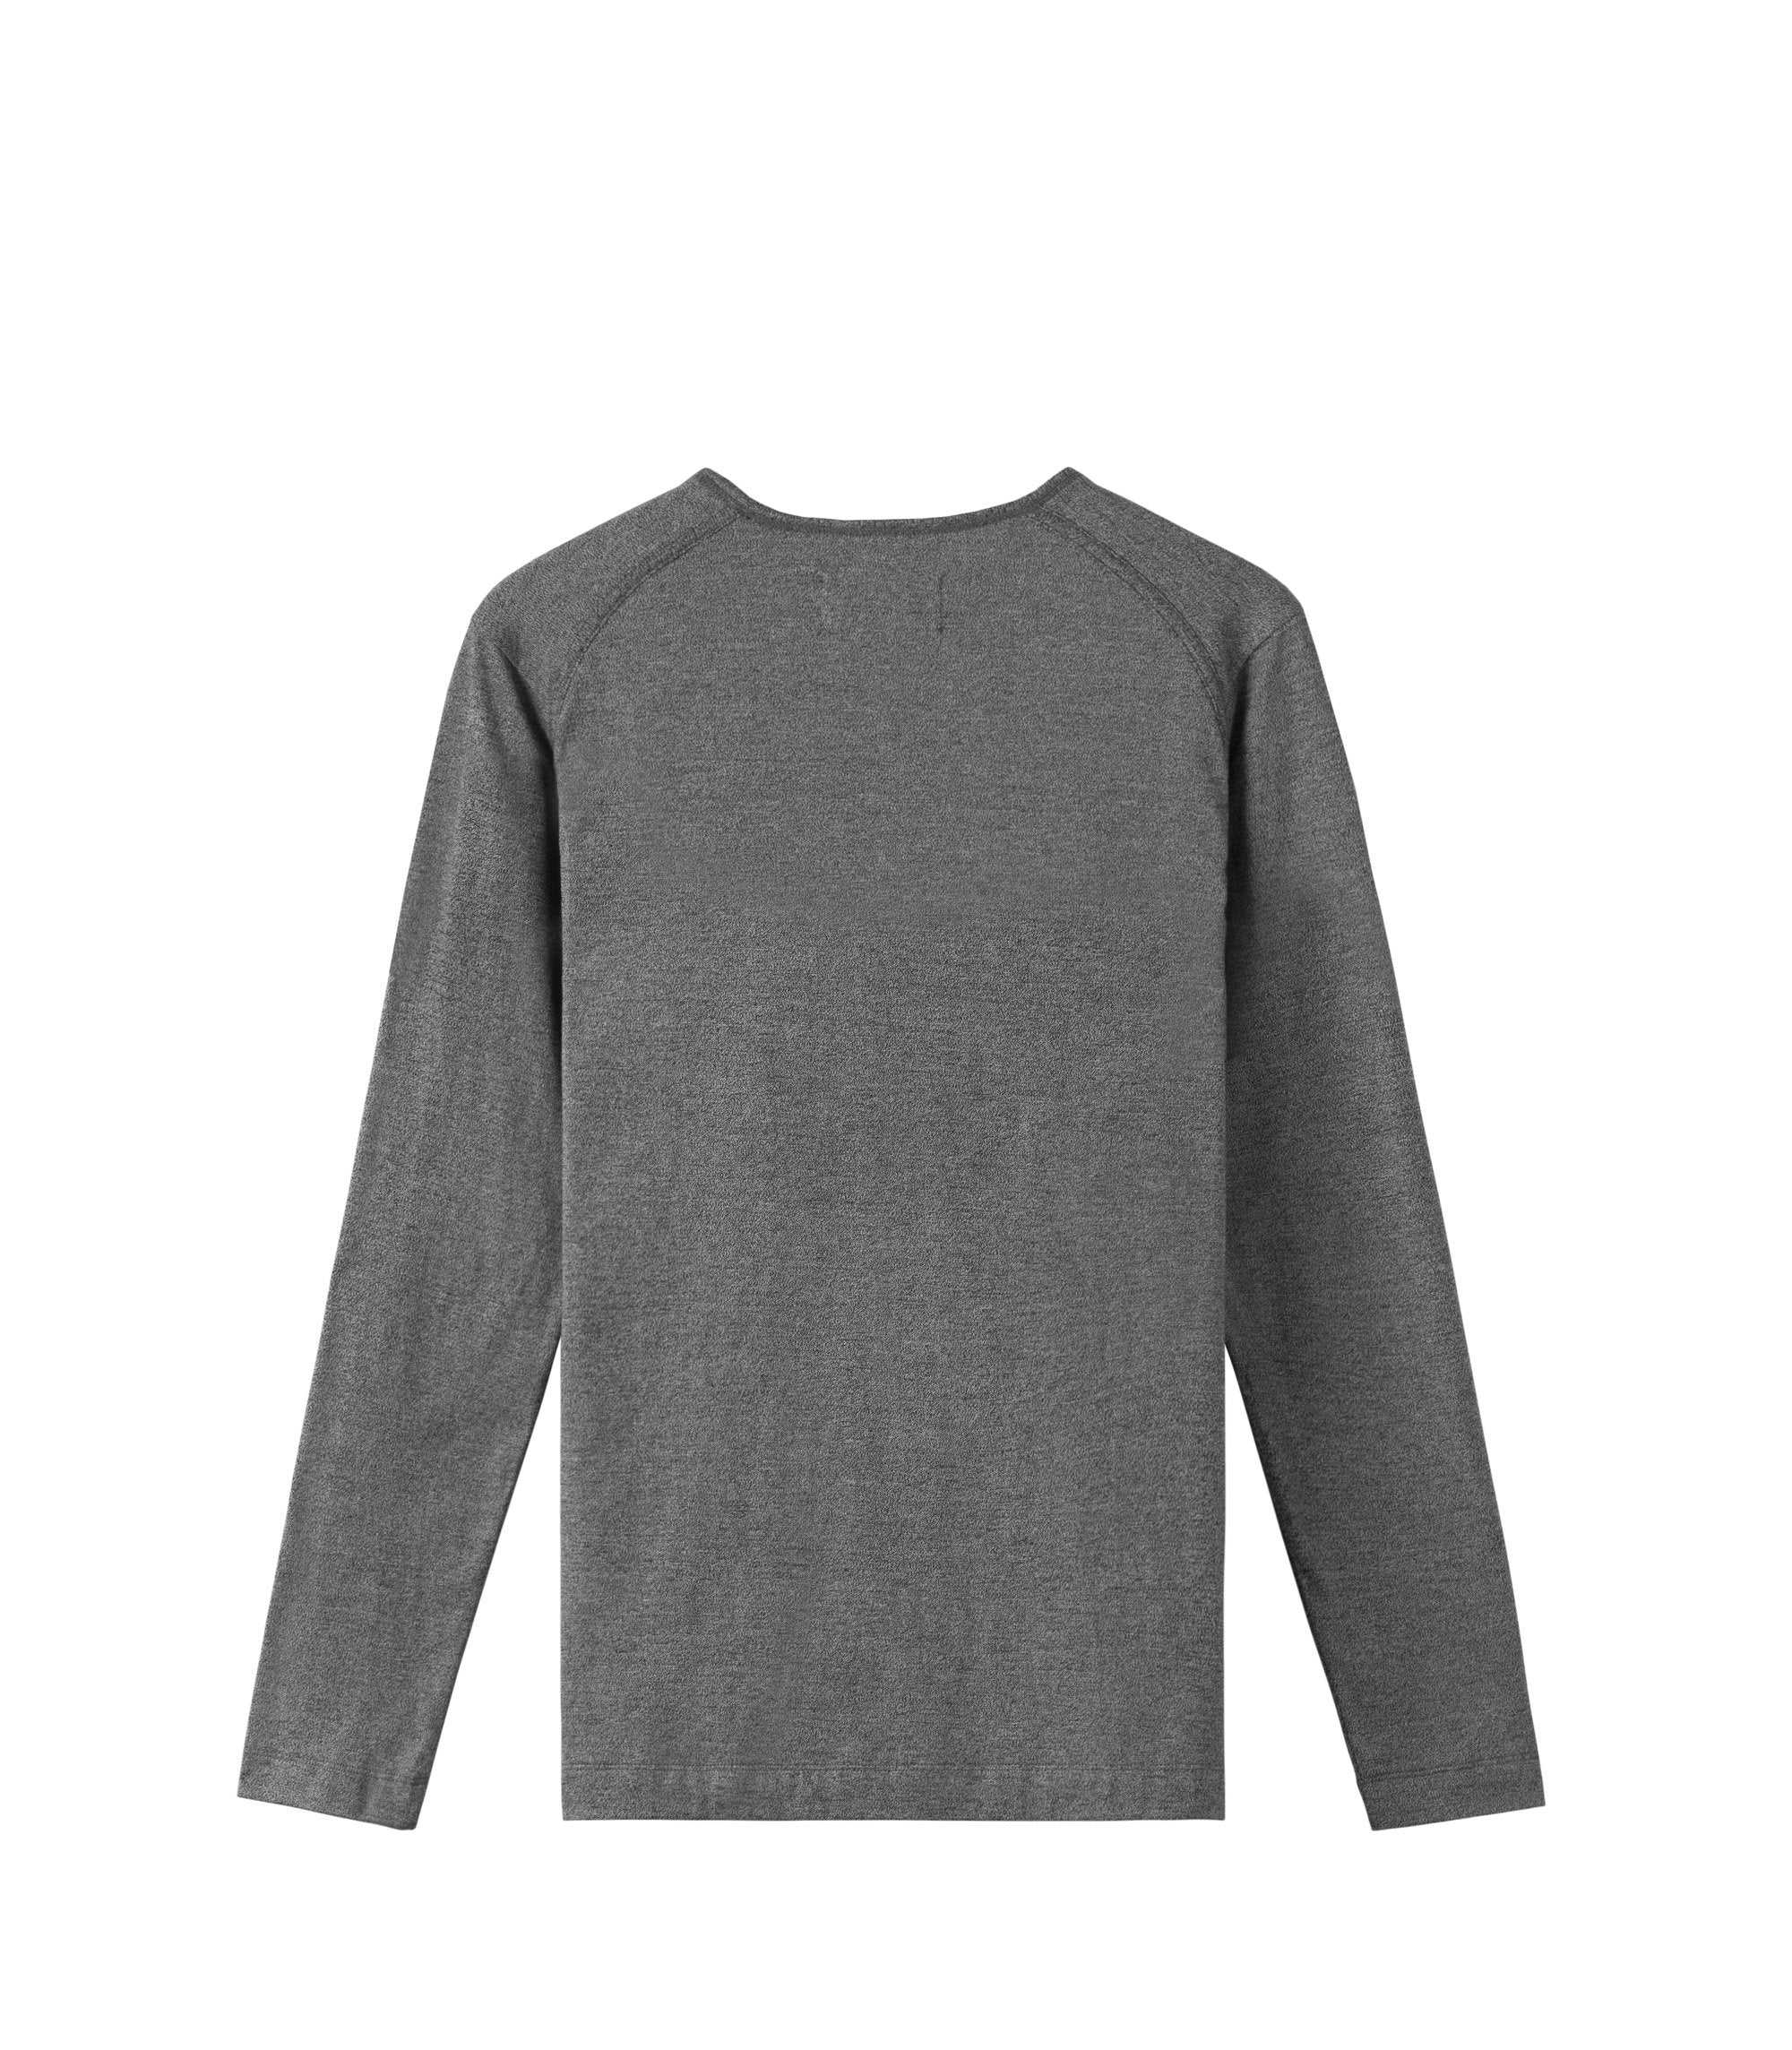 WINGS + HORNS M'S SHIRTS PIMA JERSEY LONG SLEEVE